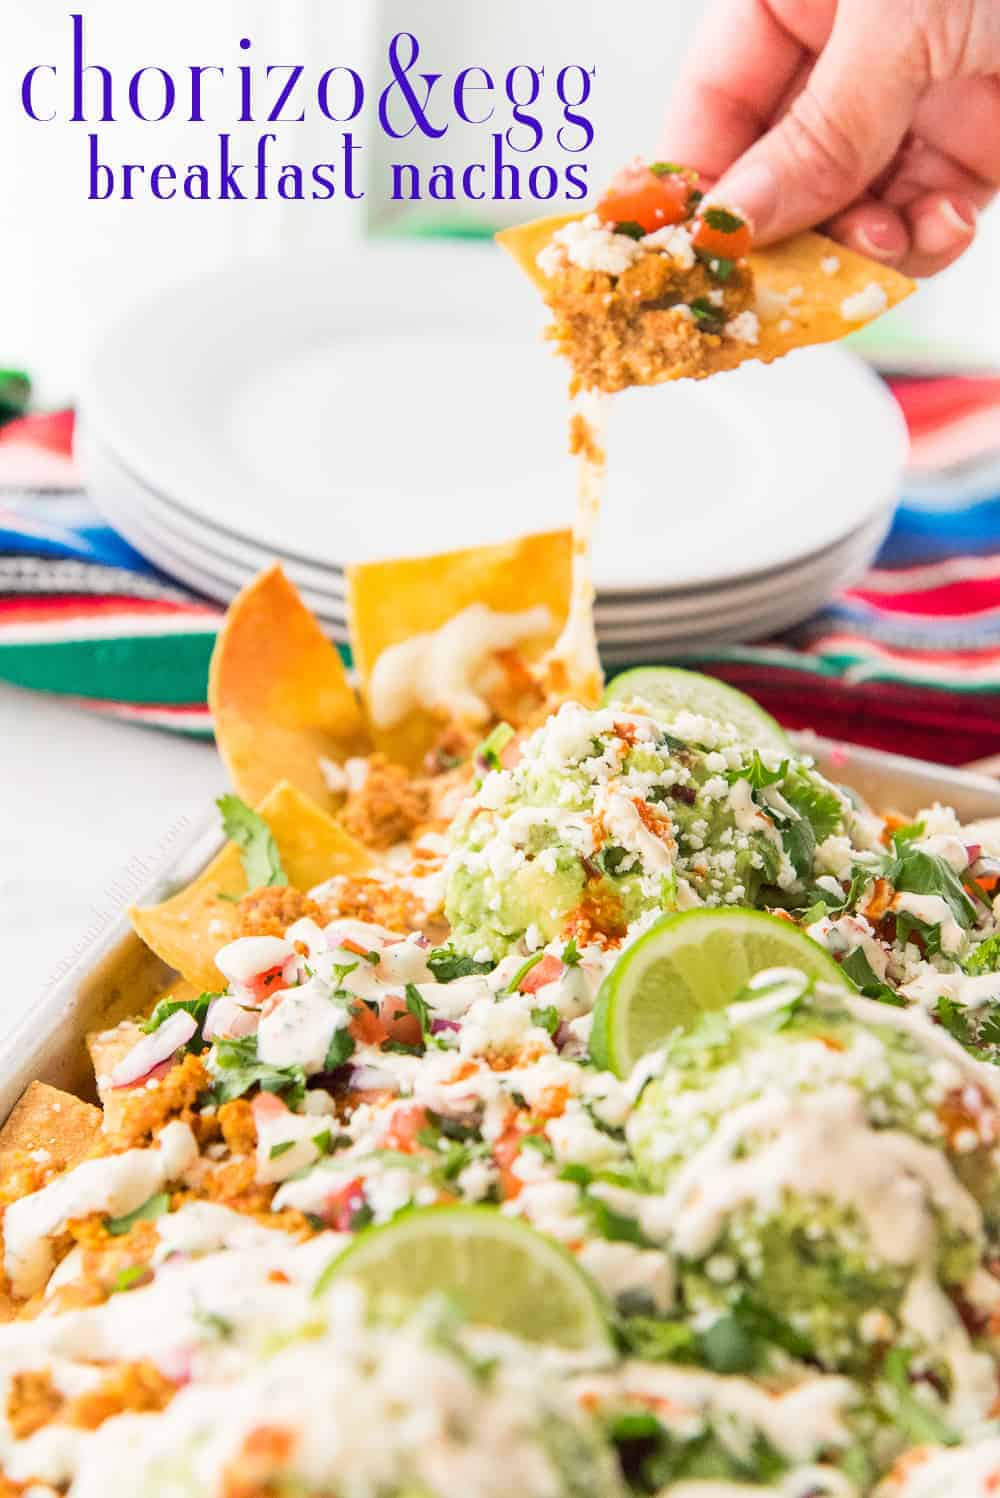 Chorizo and Egg Breakfast Nachos must be a regular part of your morning or brunch routines. Made with Mexican chorizo and freshly fried corn tortilla chips, you'll shock yourself at how easy and delicious this unique recipe is. #chorizo #Mexicanchorizo #breakfastnachos #brunch #breakfast #kidfriendly #morning #nachorecipe #corntortillas #picodegallo #guacamole #recetasdenacho #PuertoRicanrecipewriter #sheetpanmeals via @ediblesense